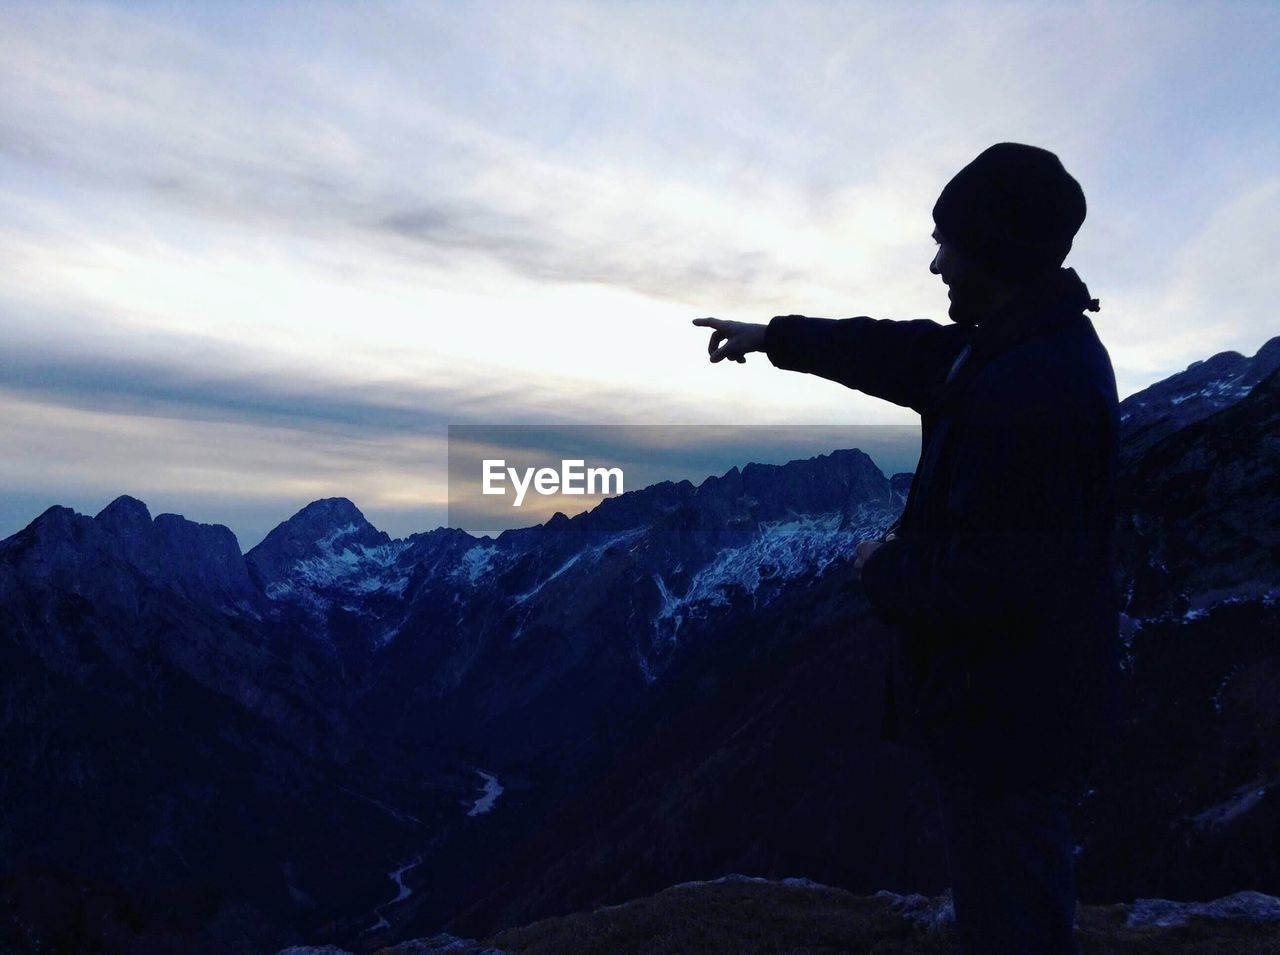 one person, mountain, sky, standing, leisure activity, real people, scenics - nature, activity, men, lifestyles, three quarter length, beauty in nature, side view, nature, non-urban scene, holding, silhouette, cloud - sky, tranquility, mountain range, outdoors